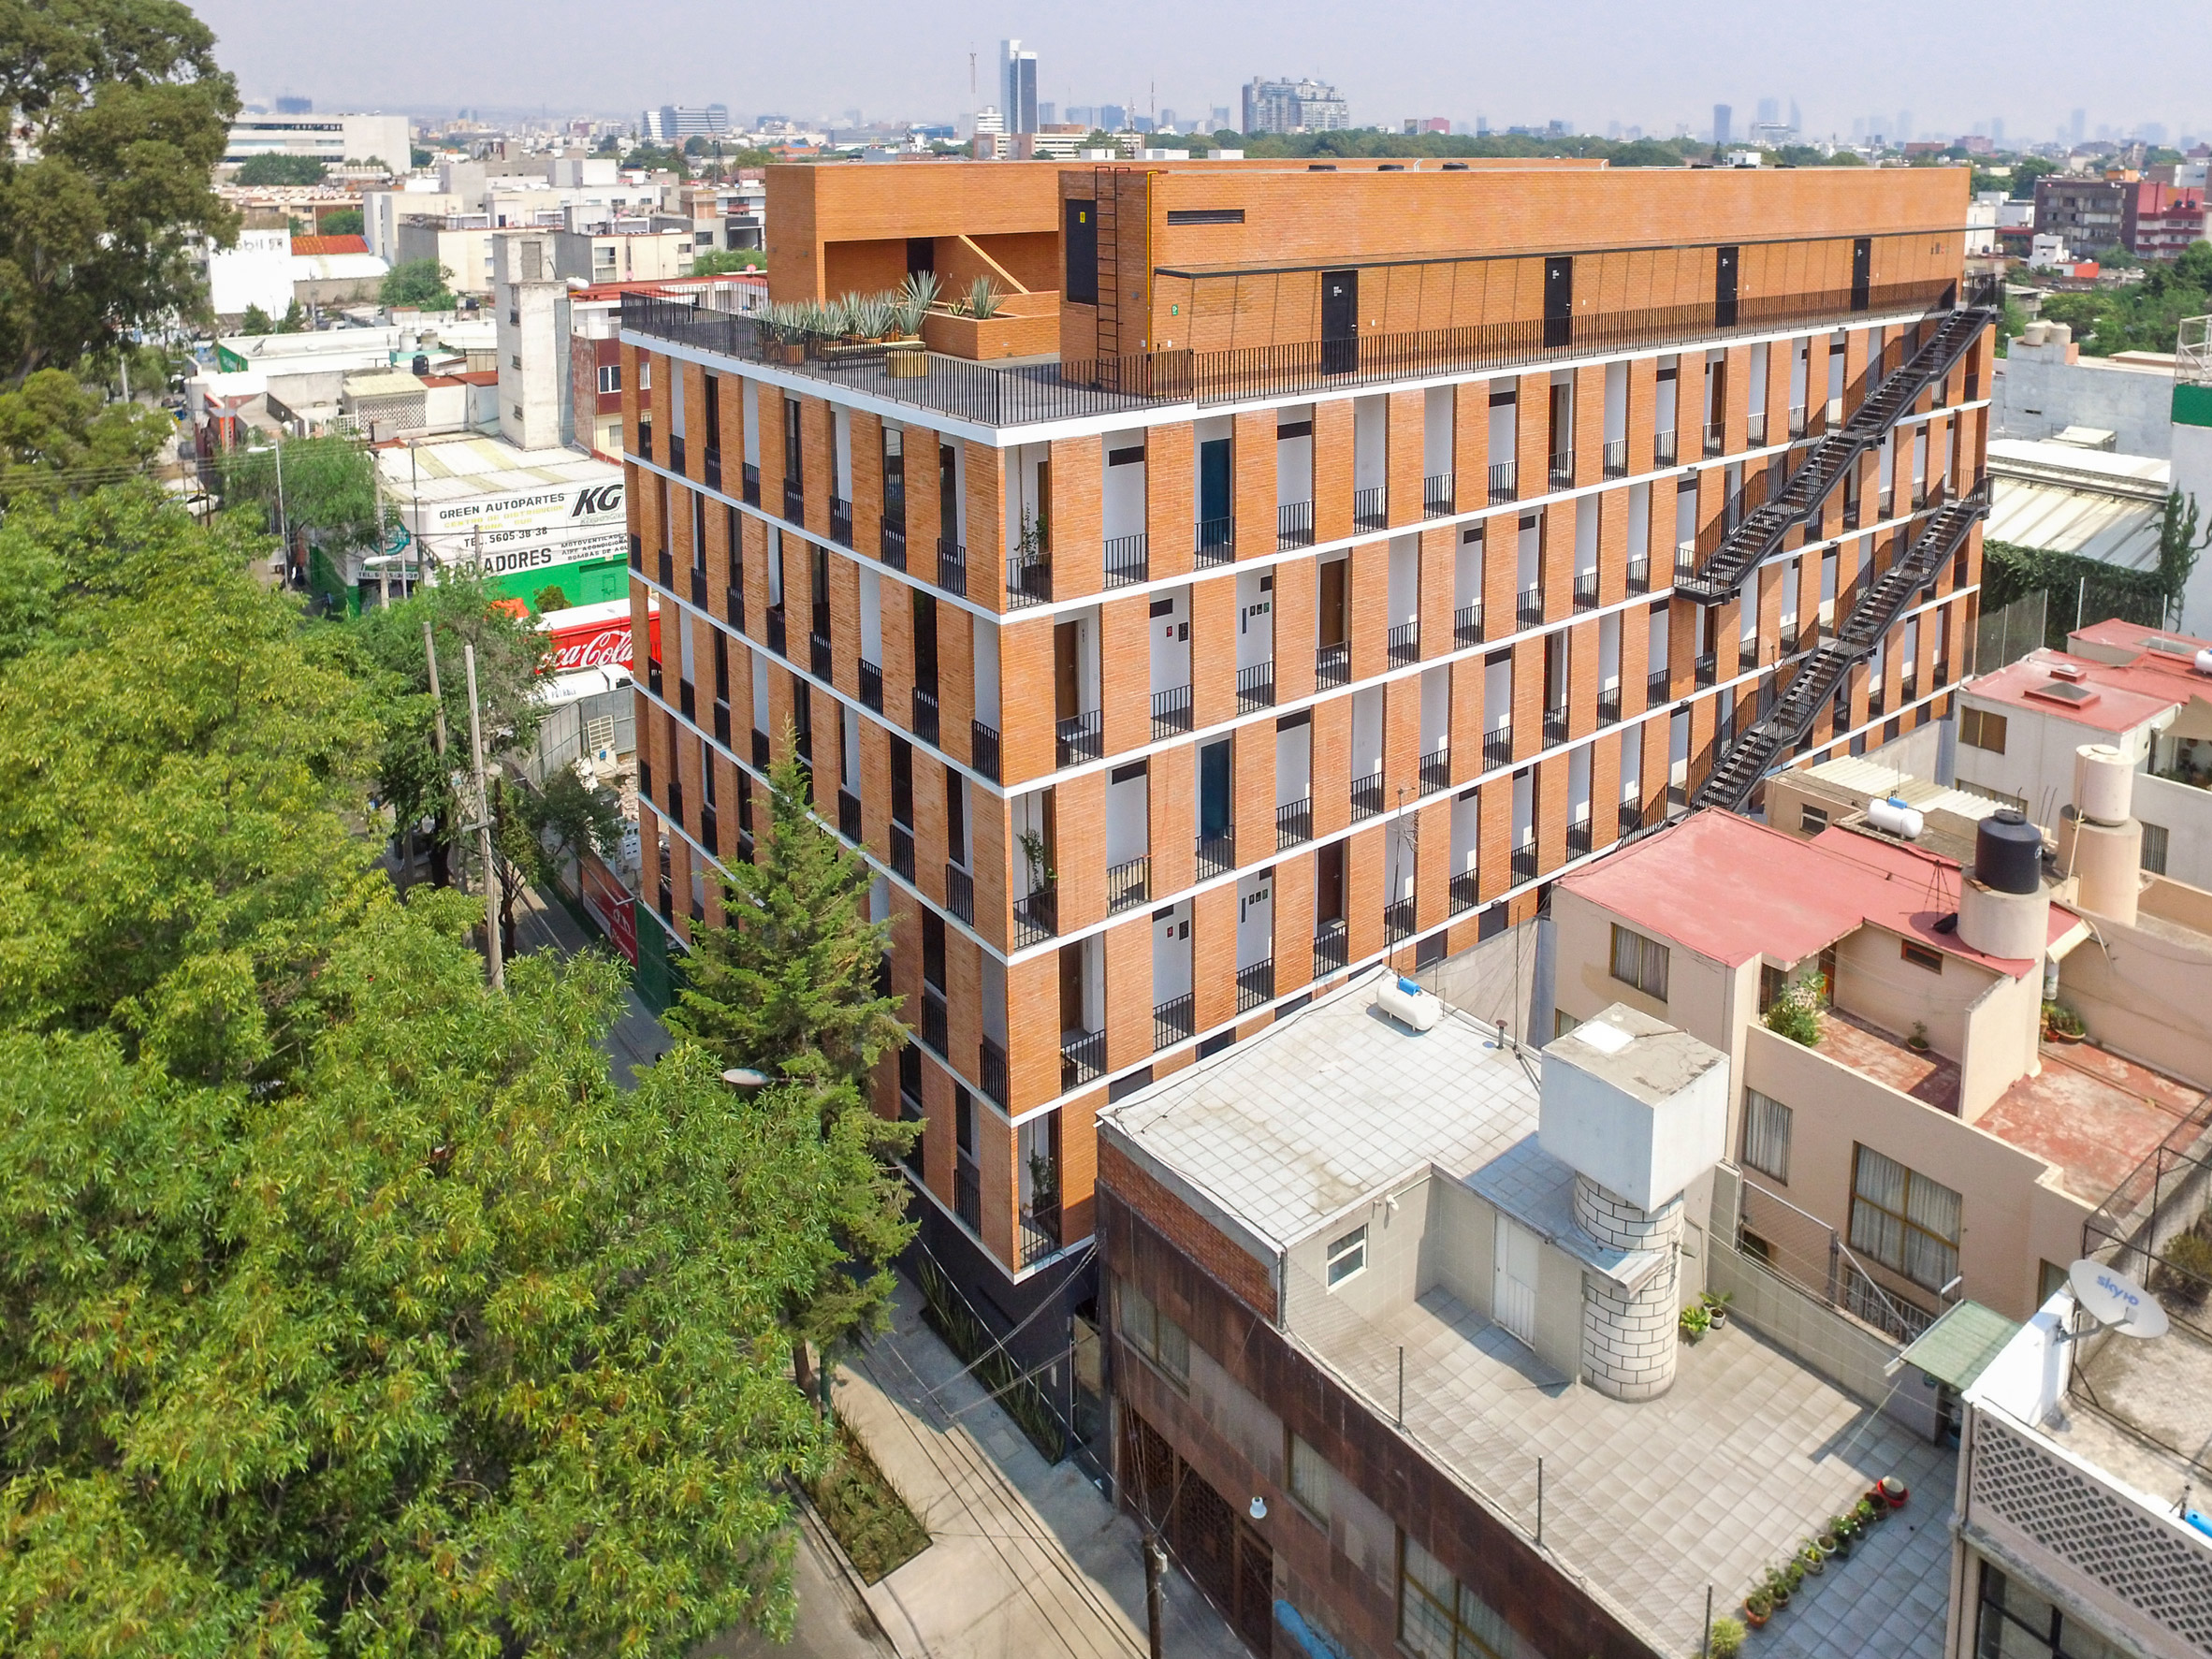 HGR Arquitectos uses orange bricks to build Mexico City apartment block